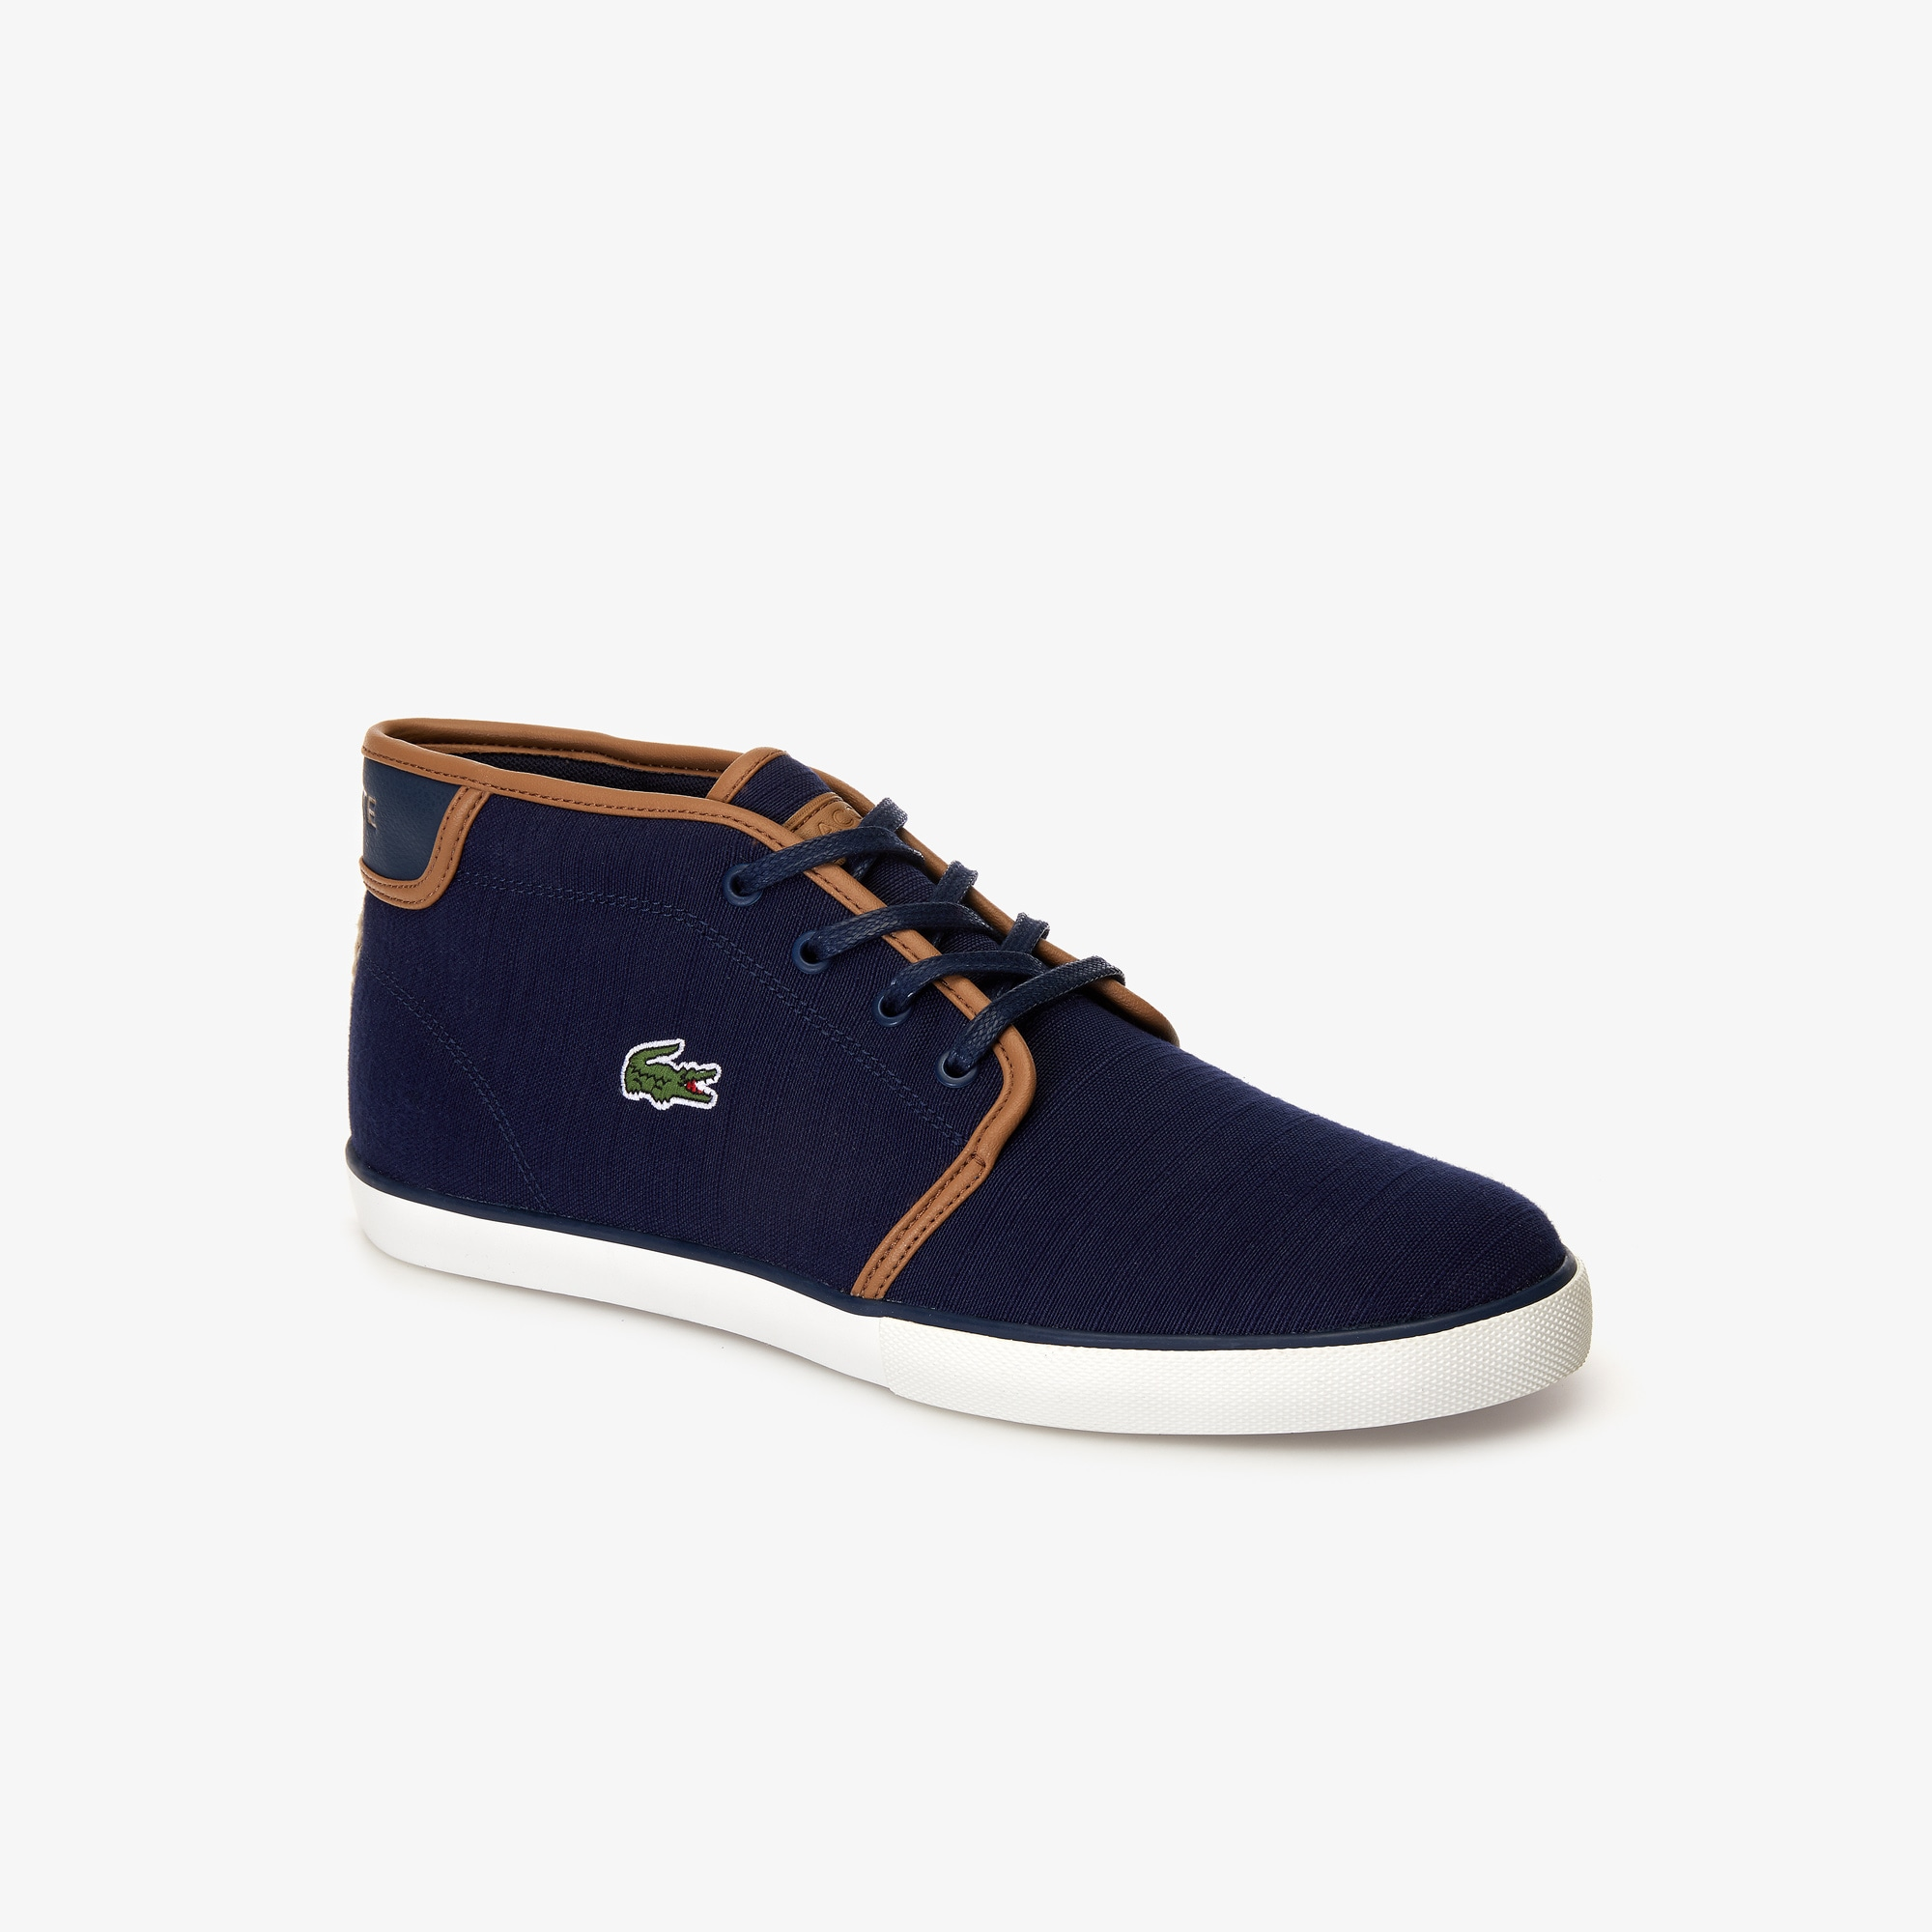 Et Chaussures Sneakers Homme Baskets Homme Lacoste 8wEwBPqr